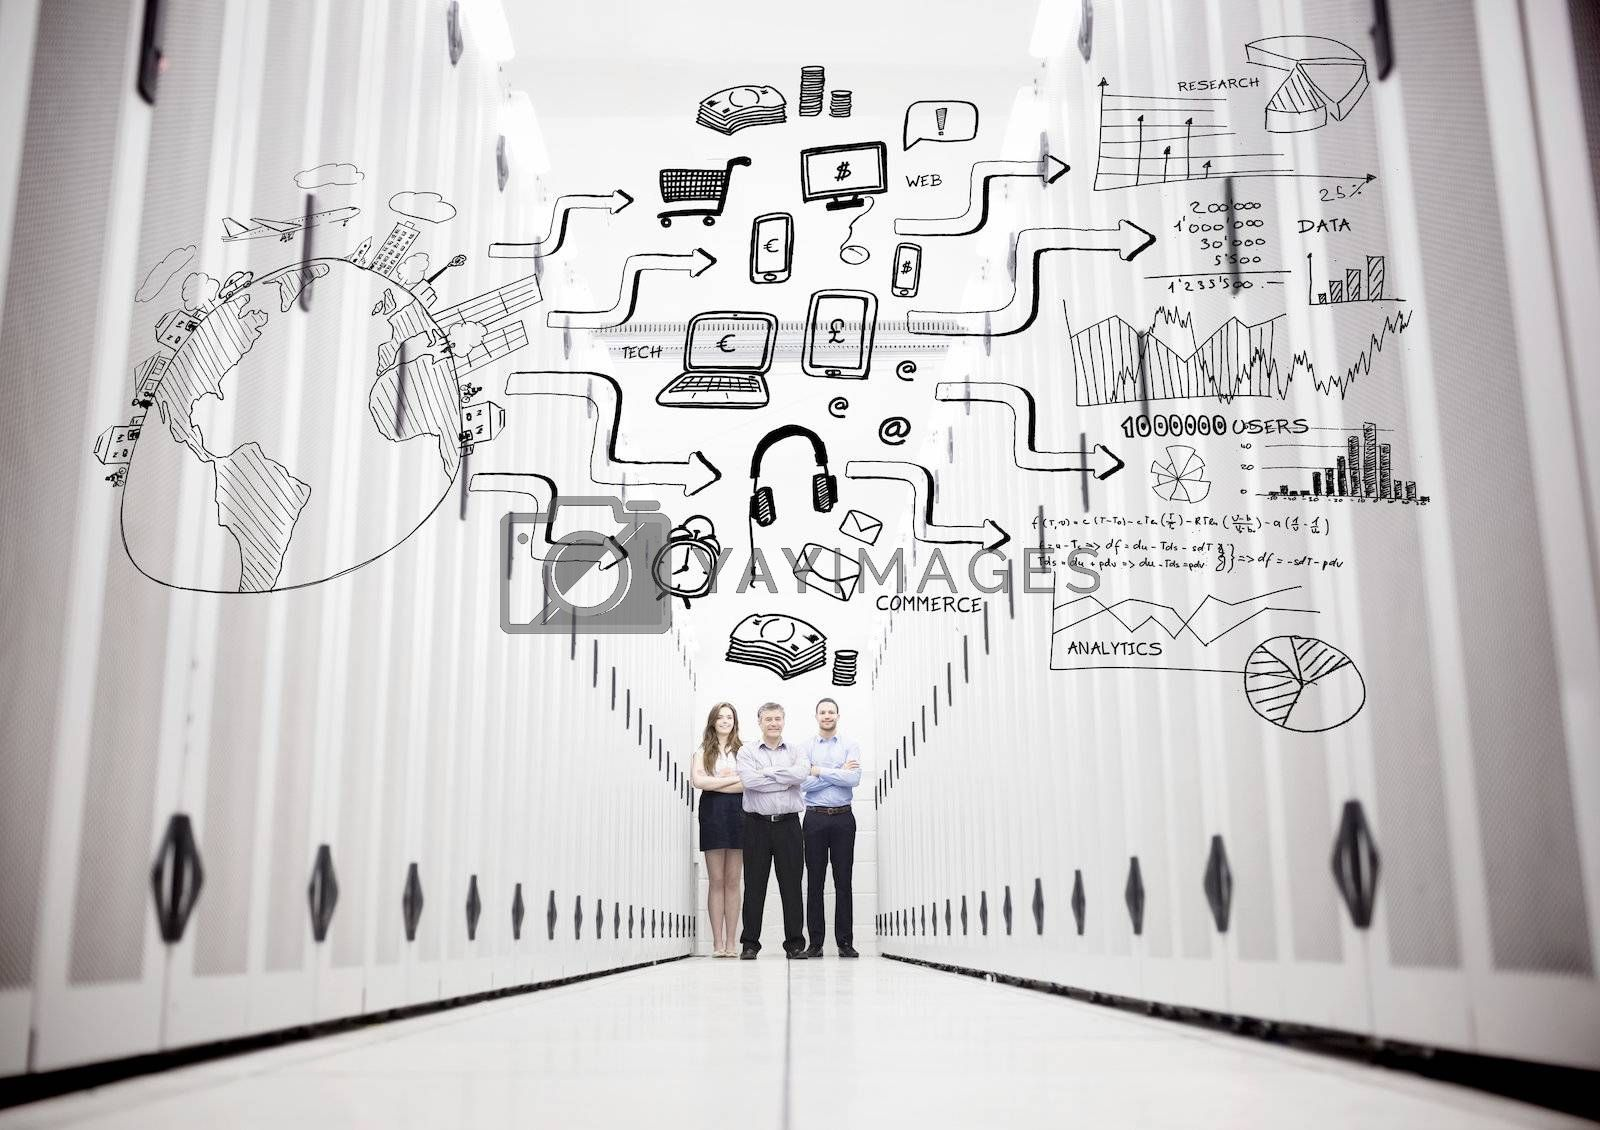 Colleagues in a data center standing in front of a drawing of a process